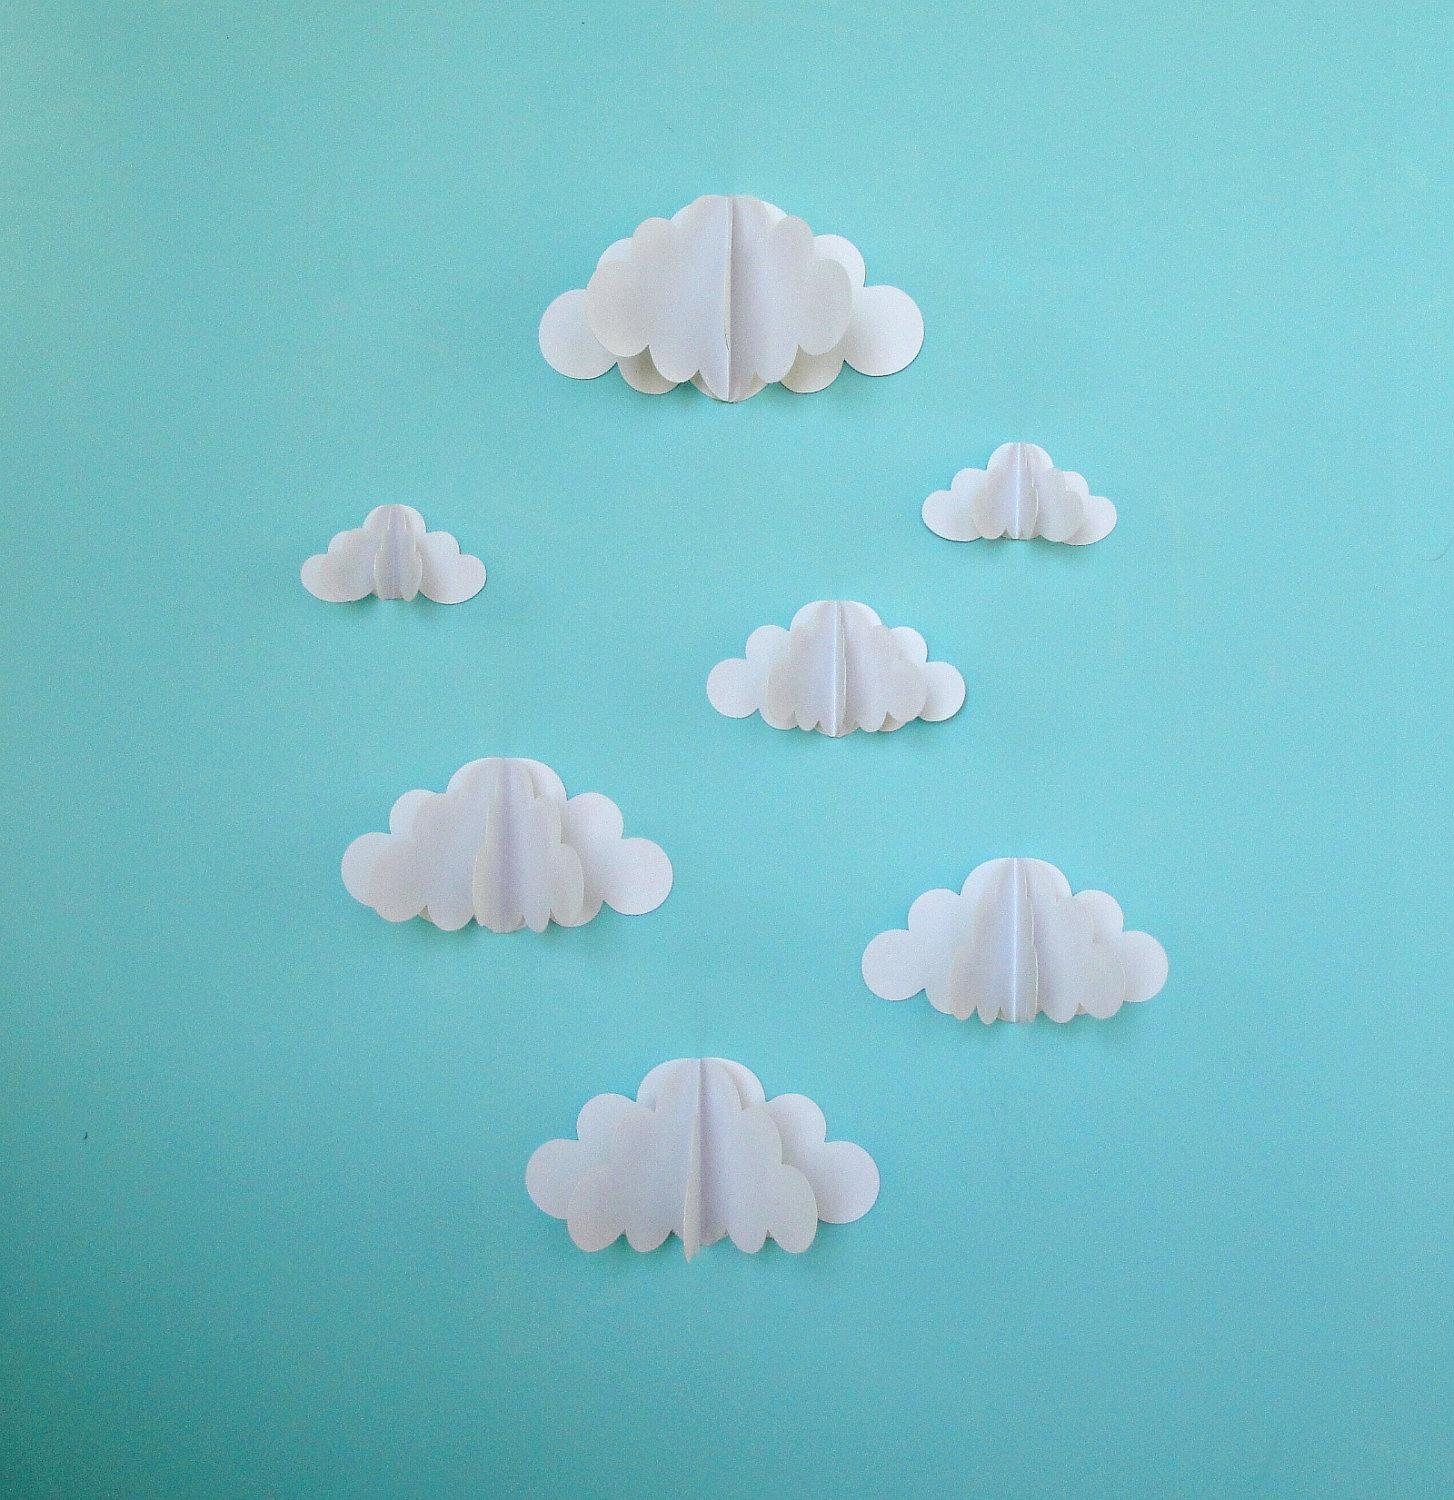 3D Paper Wall Clouds 3D Paper Wall Art/wall Decor/wall Throughout 3D Paper Wall Art (View 8 of 20)